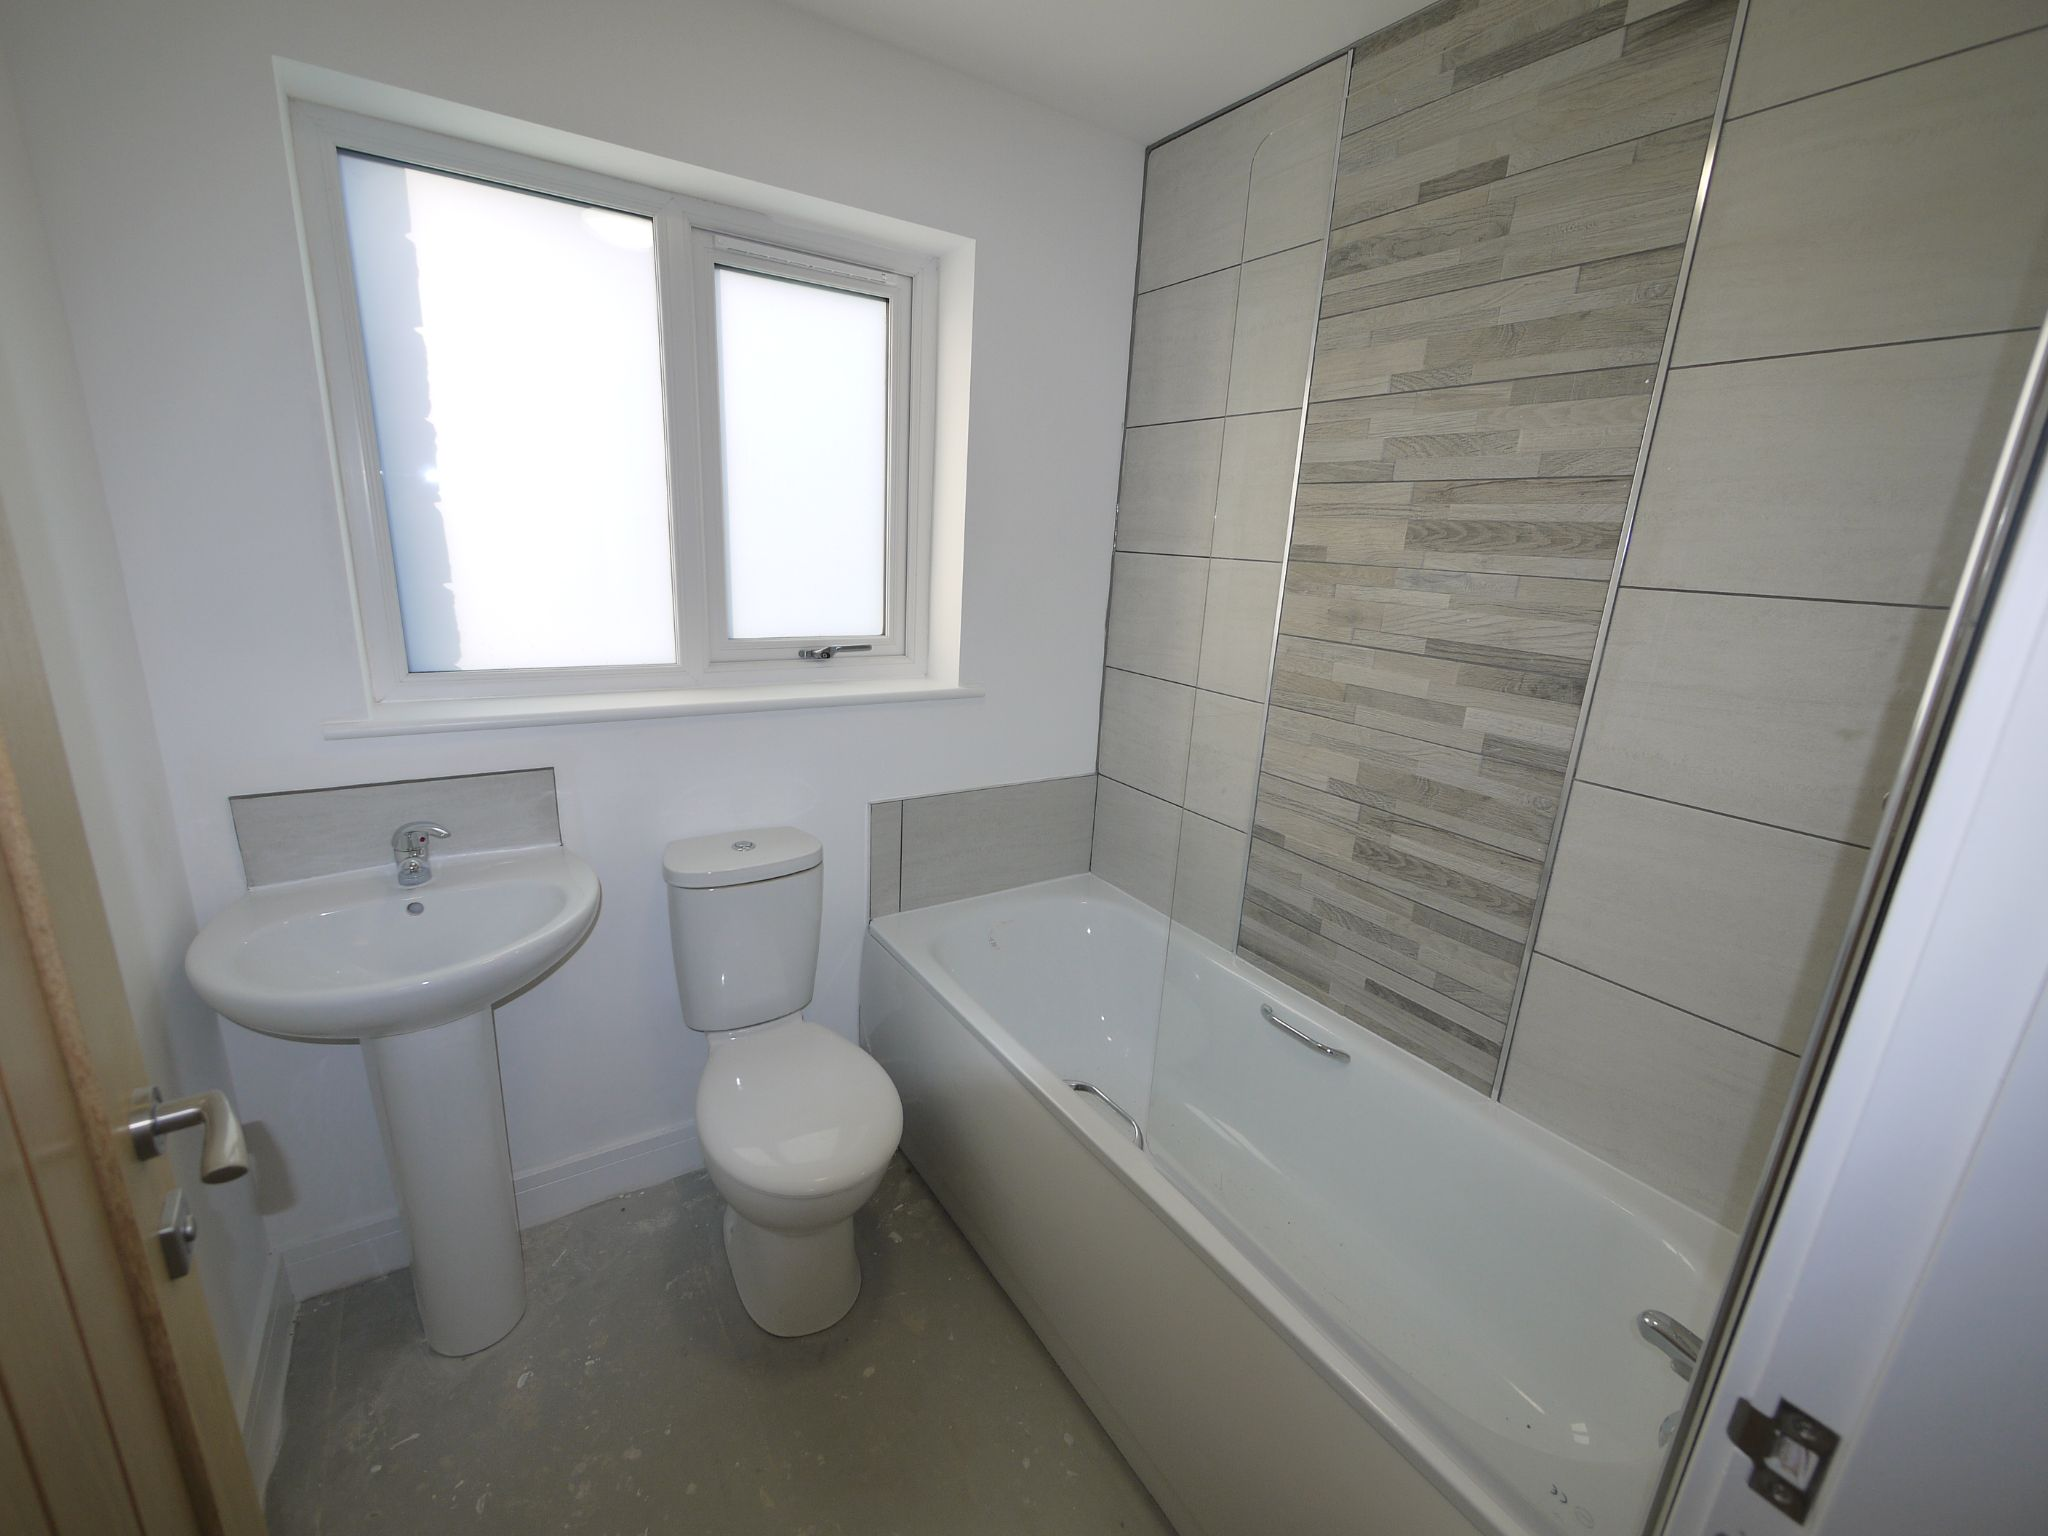 3 bedroom detached house SSTC in Brighouse - Photograph 6.